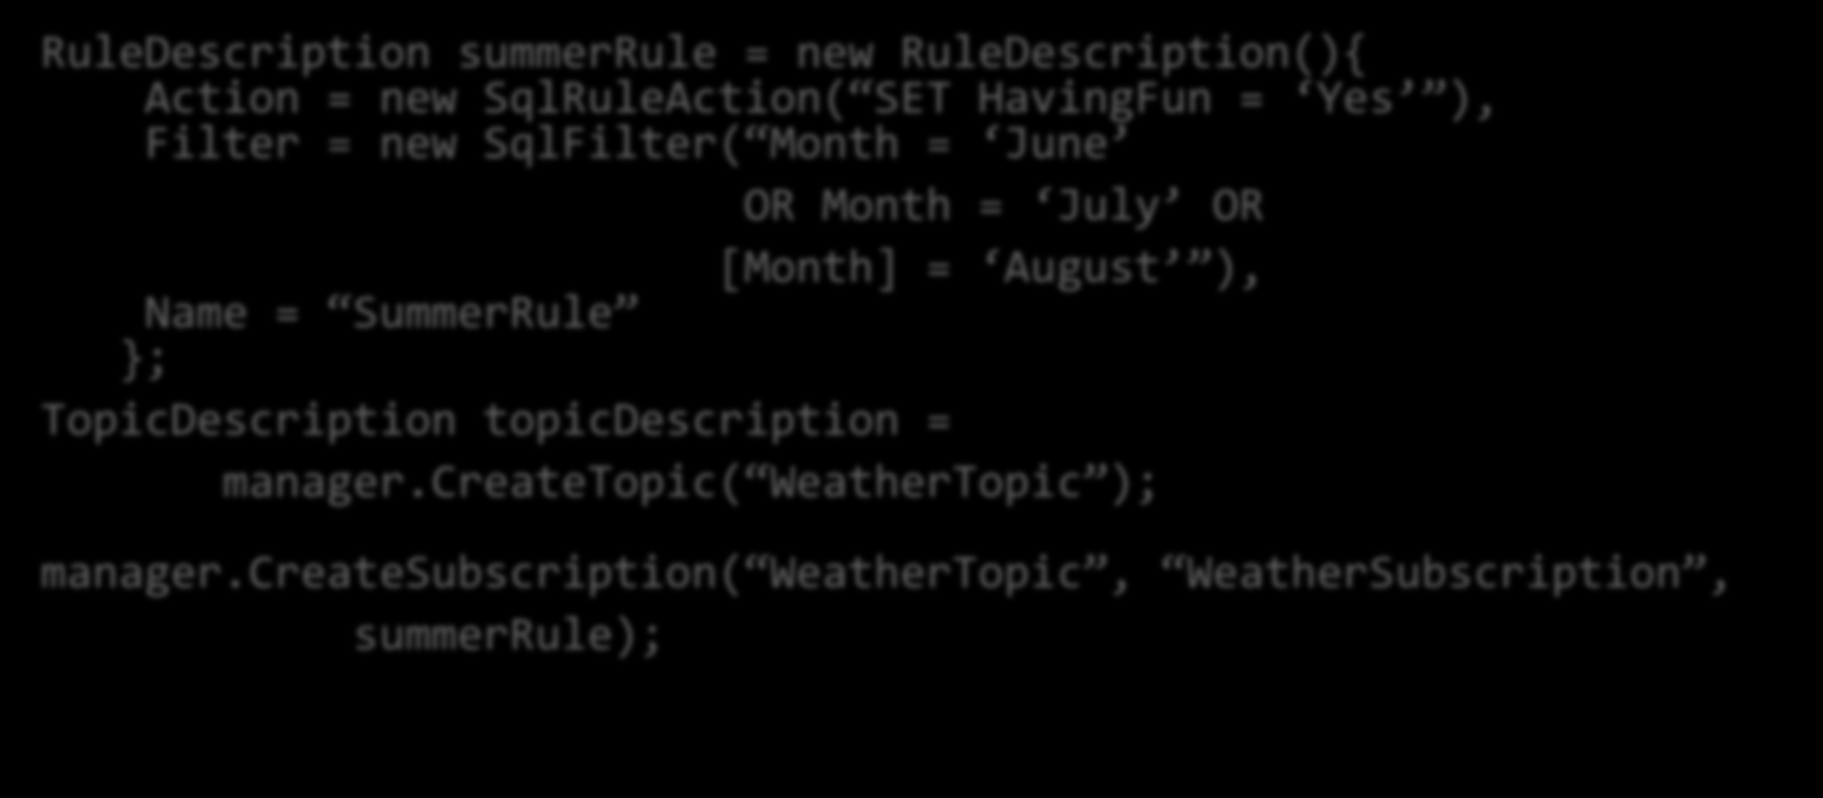 RuleDescription summerrule = new RuleDescription(){ Action = new SqlRuleAction( SET HavingFun = Yes ), Filter = new SqlFilter( Month = June OR Month = July OR [Month] = August